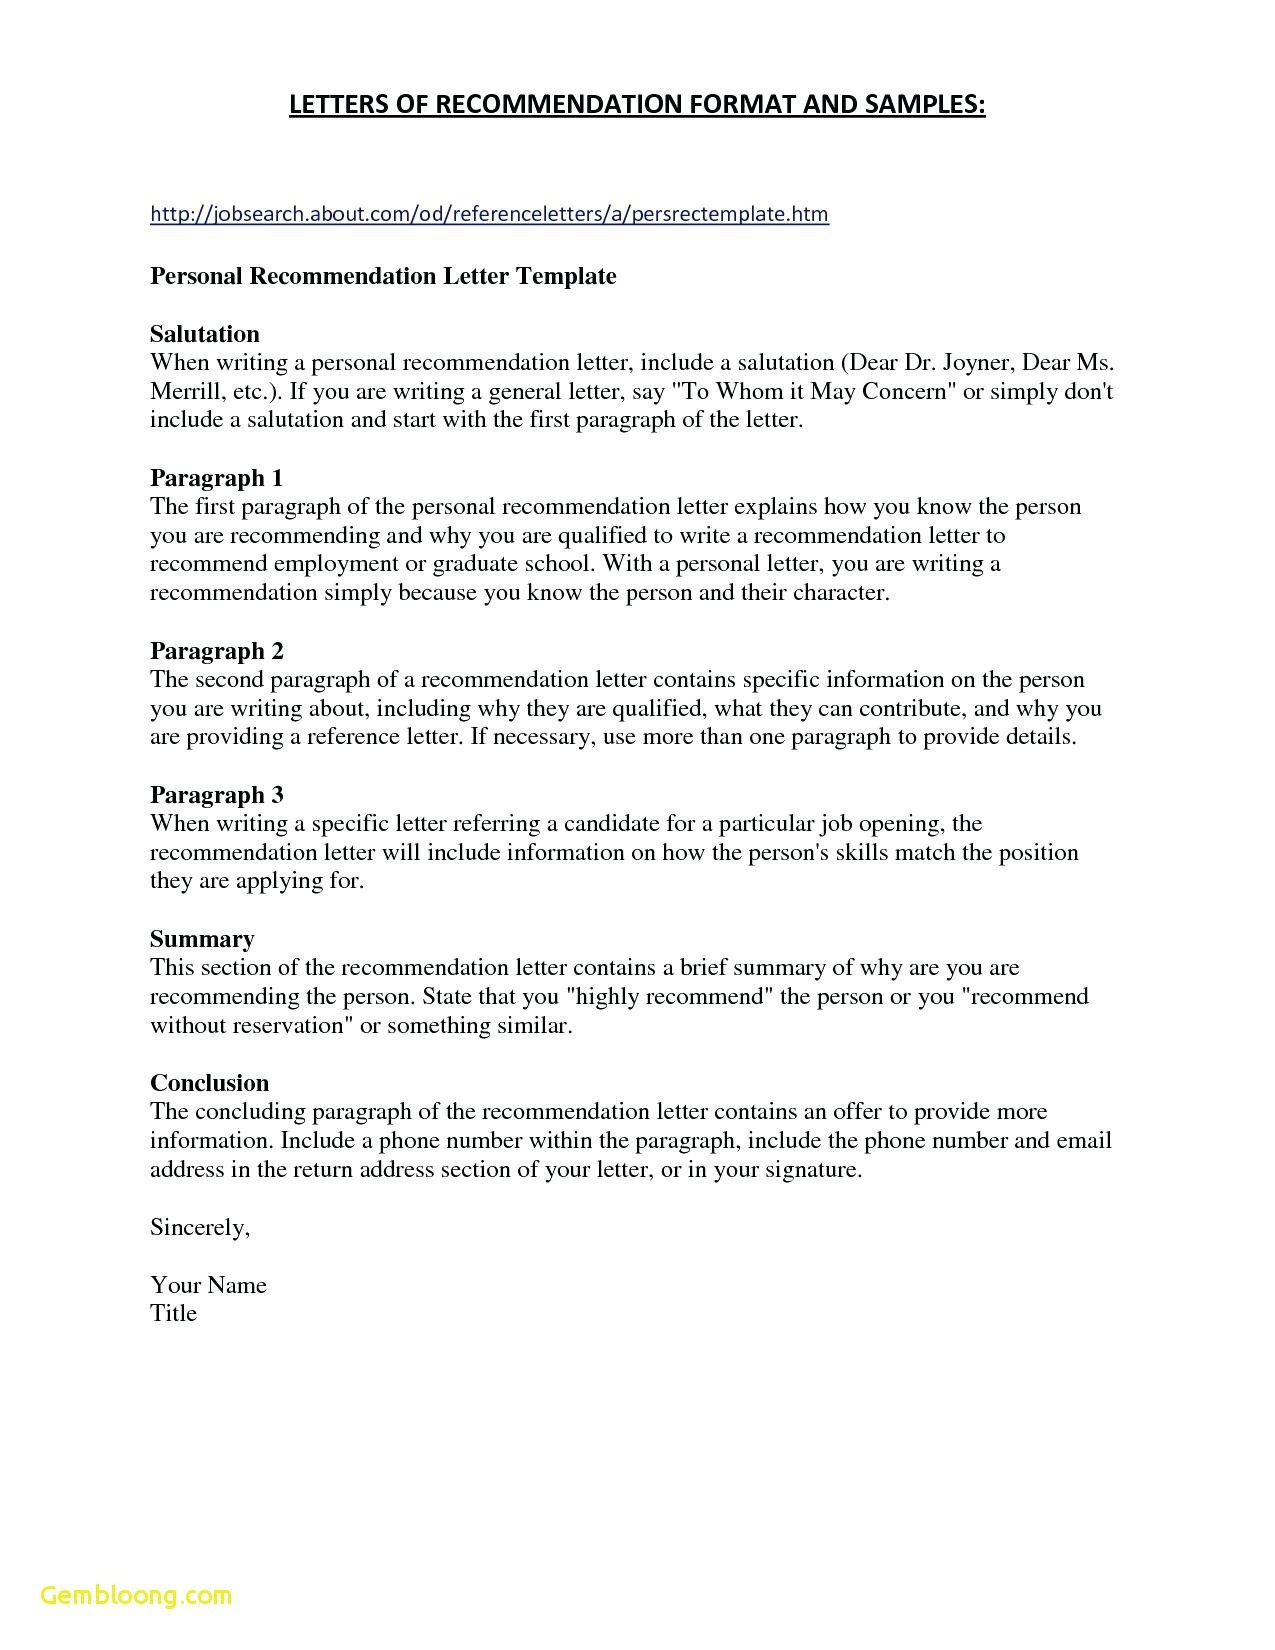 Professional Reference Letter Template Free - Job Re Mendation Letter Template Best Refrence format Job